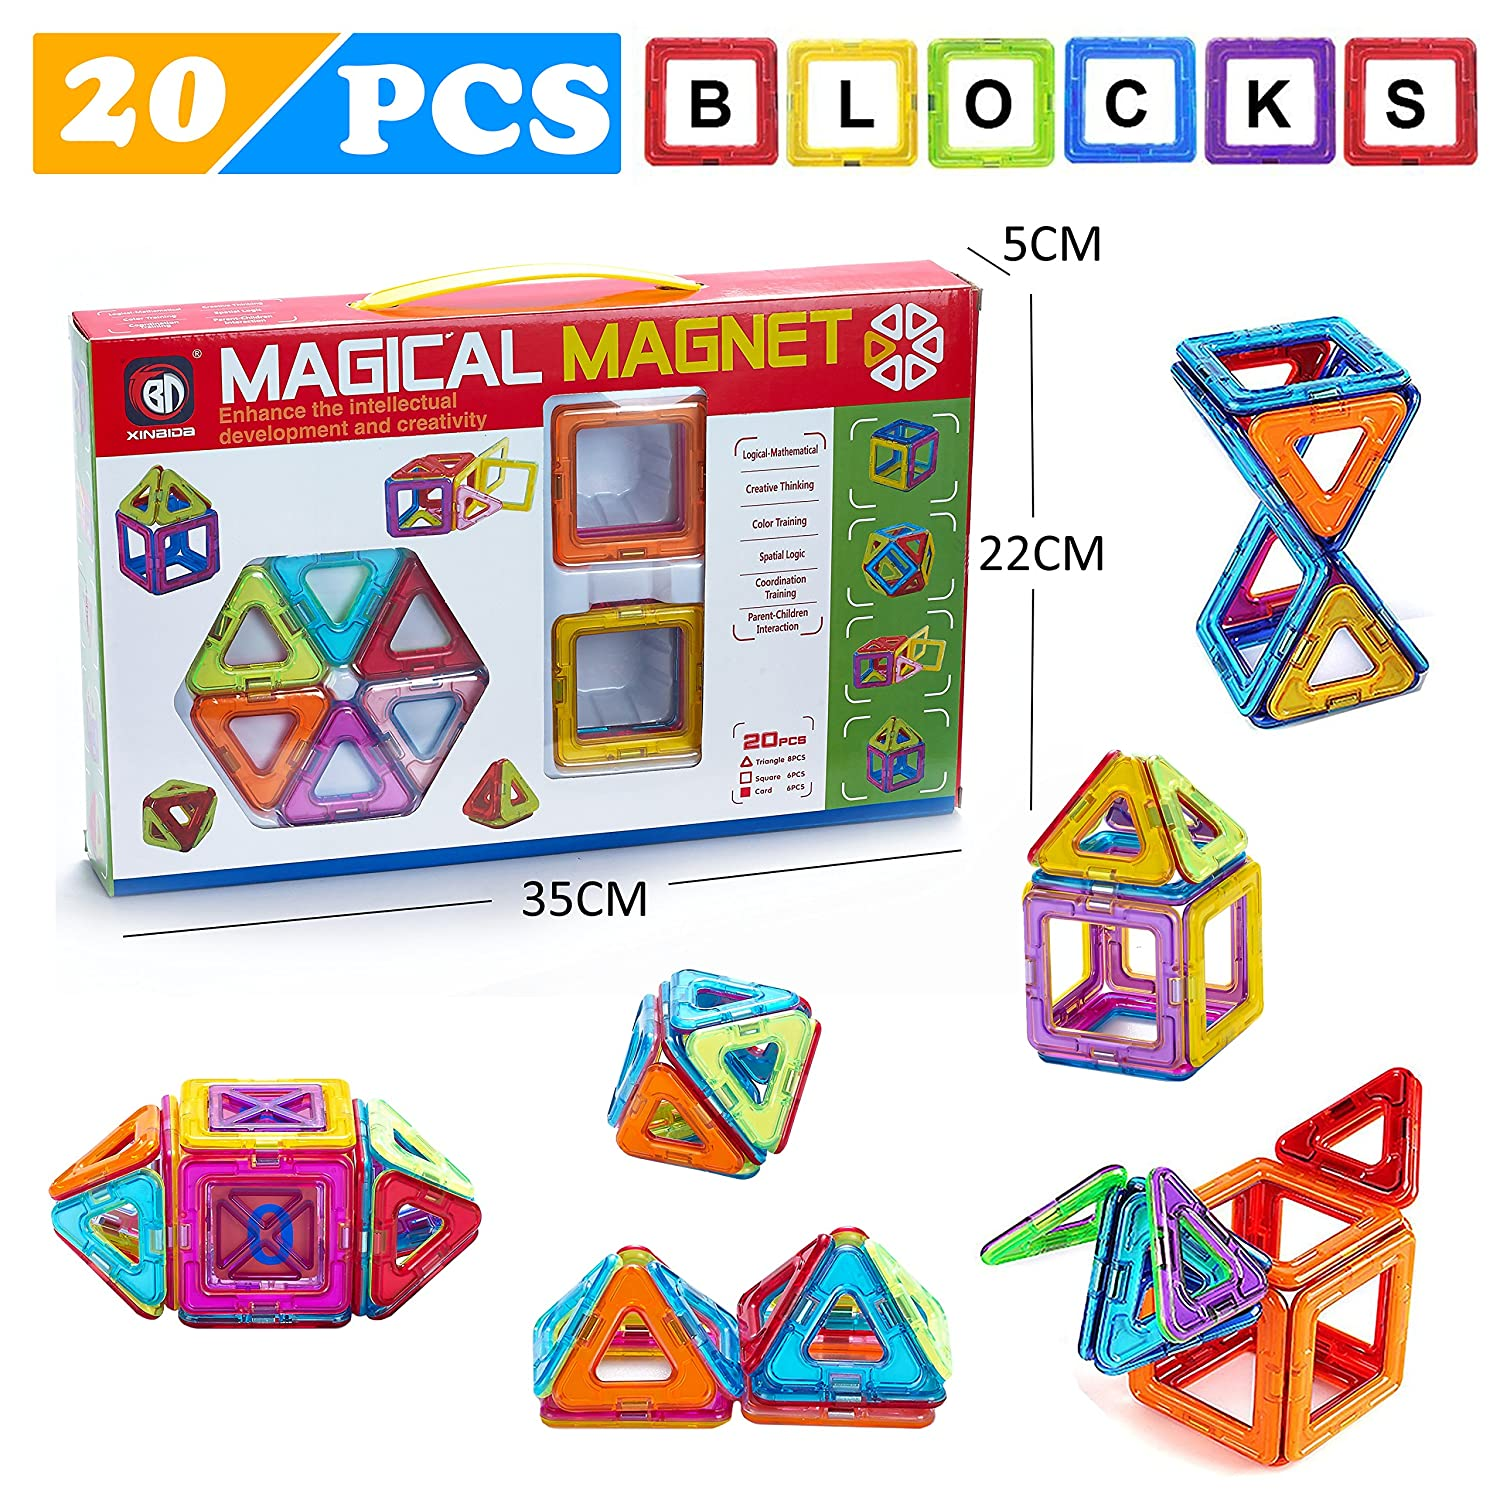 Minihorse Educational Building Toy 20 pieces with Activities to Learn Math STEM Concepts Magnetic Blocks Building Set for Kids Magnetic Tiles For 2 5 Year Old Boys Girls